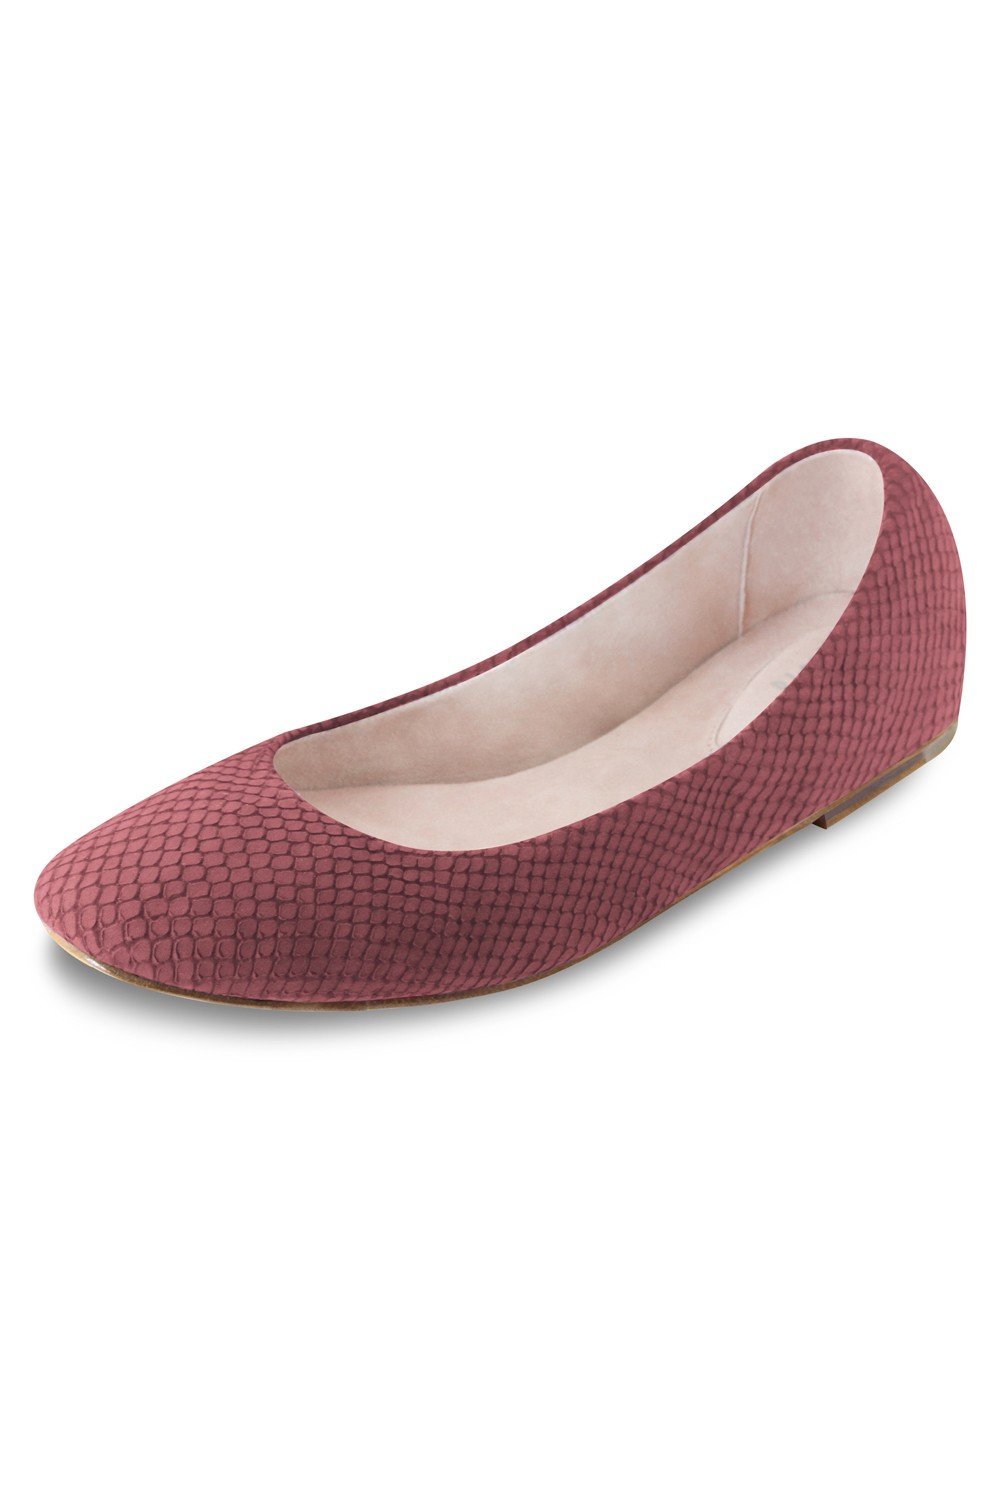 Keeley Ballet Flat Womens Fashion Shoes